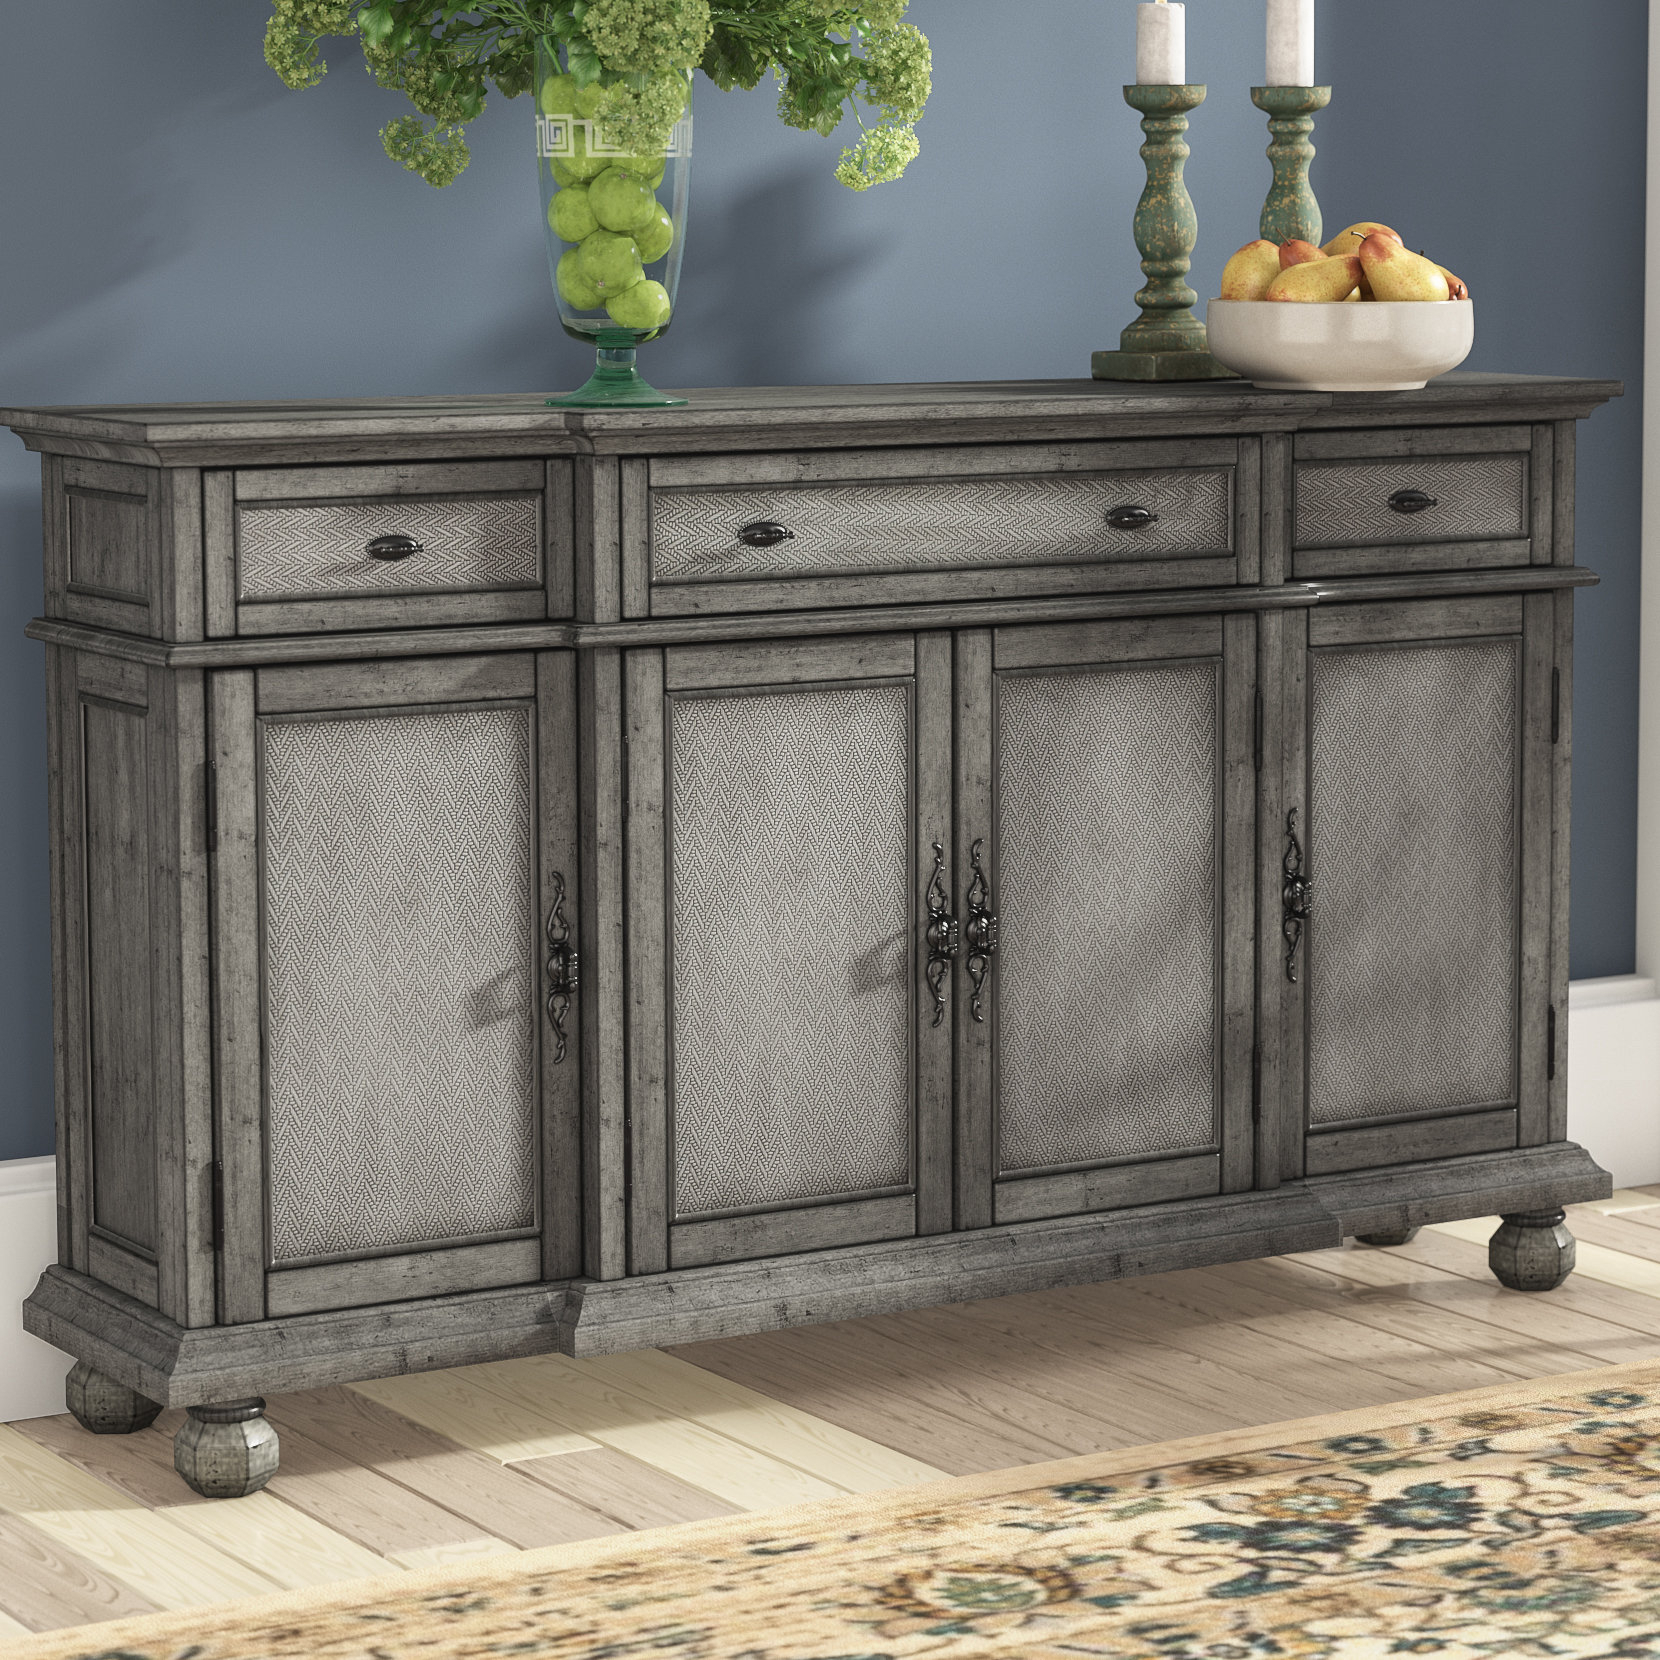 60 Inch Credenza | Wayfair for Senda Credenzas (Image 2 of 30)